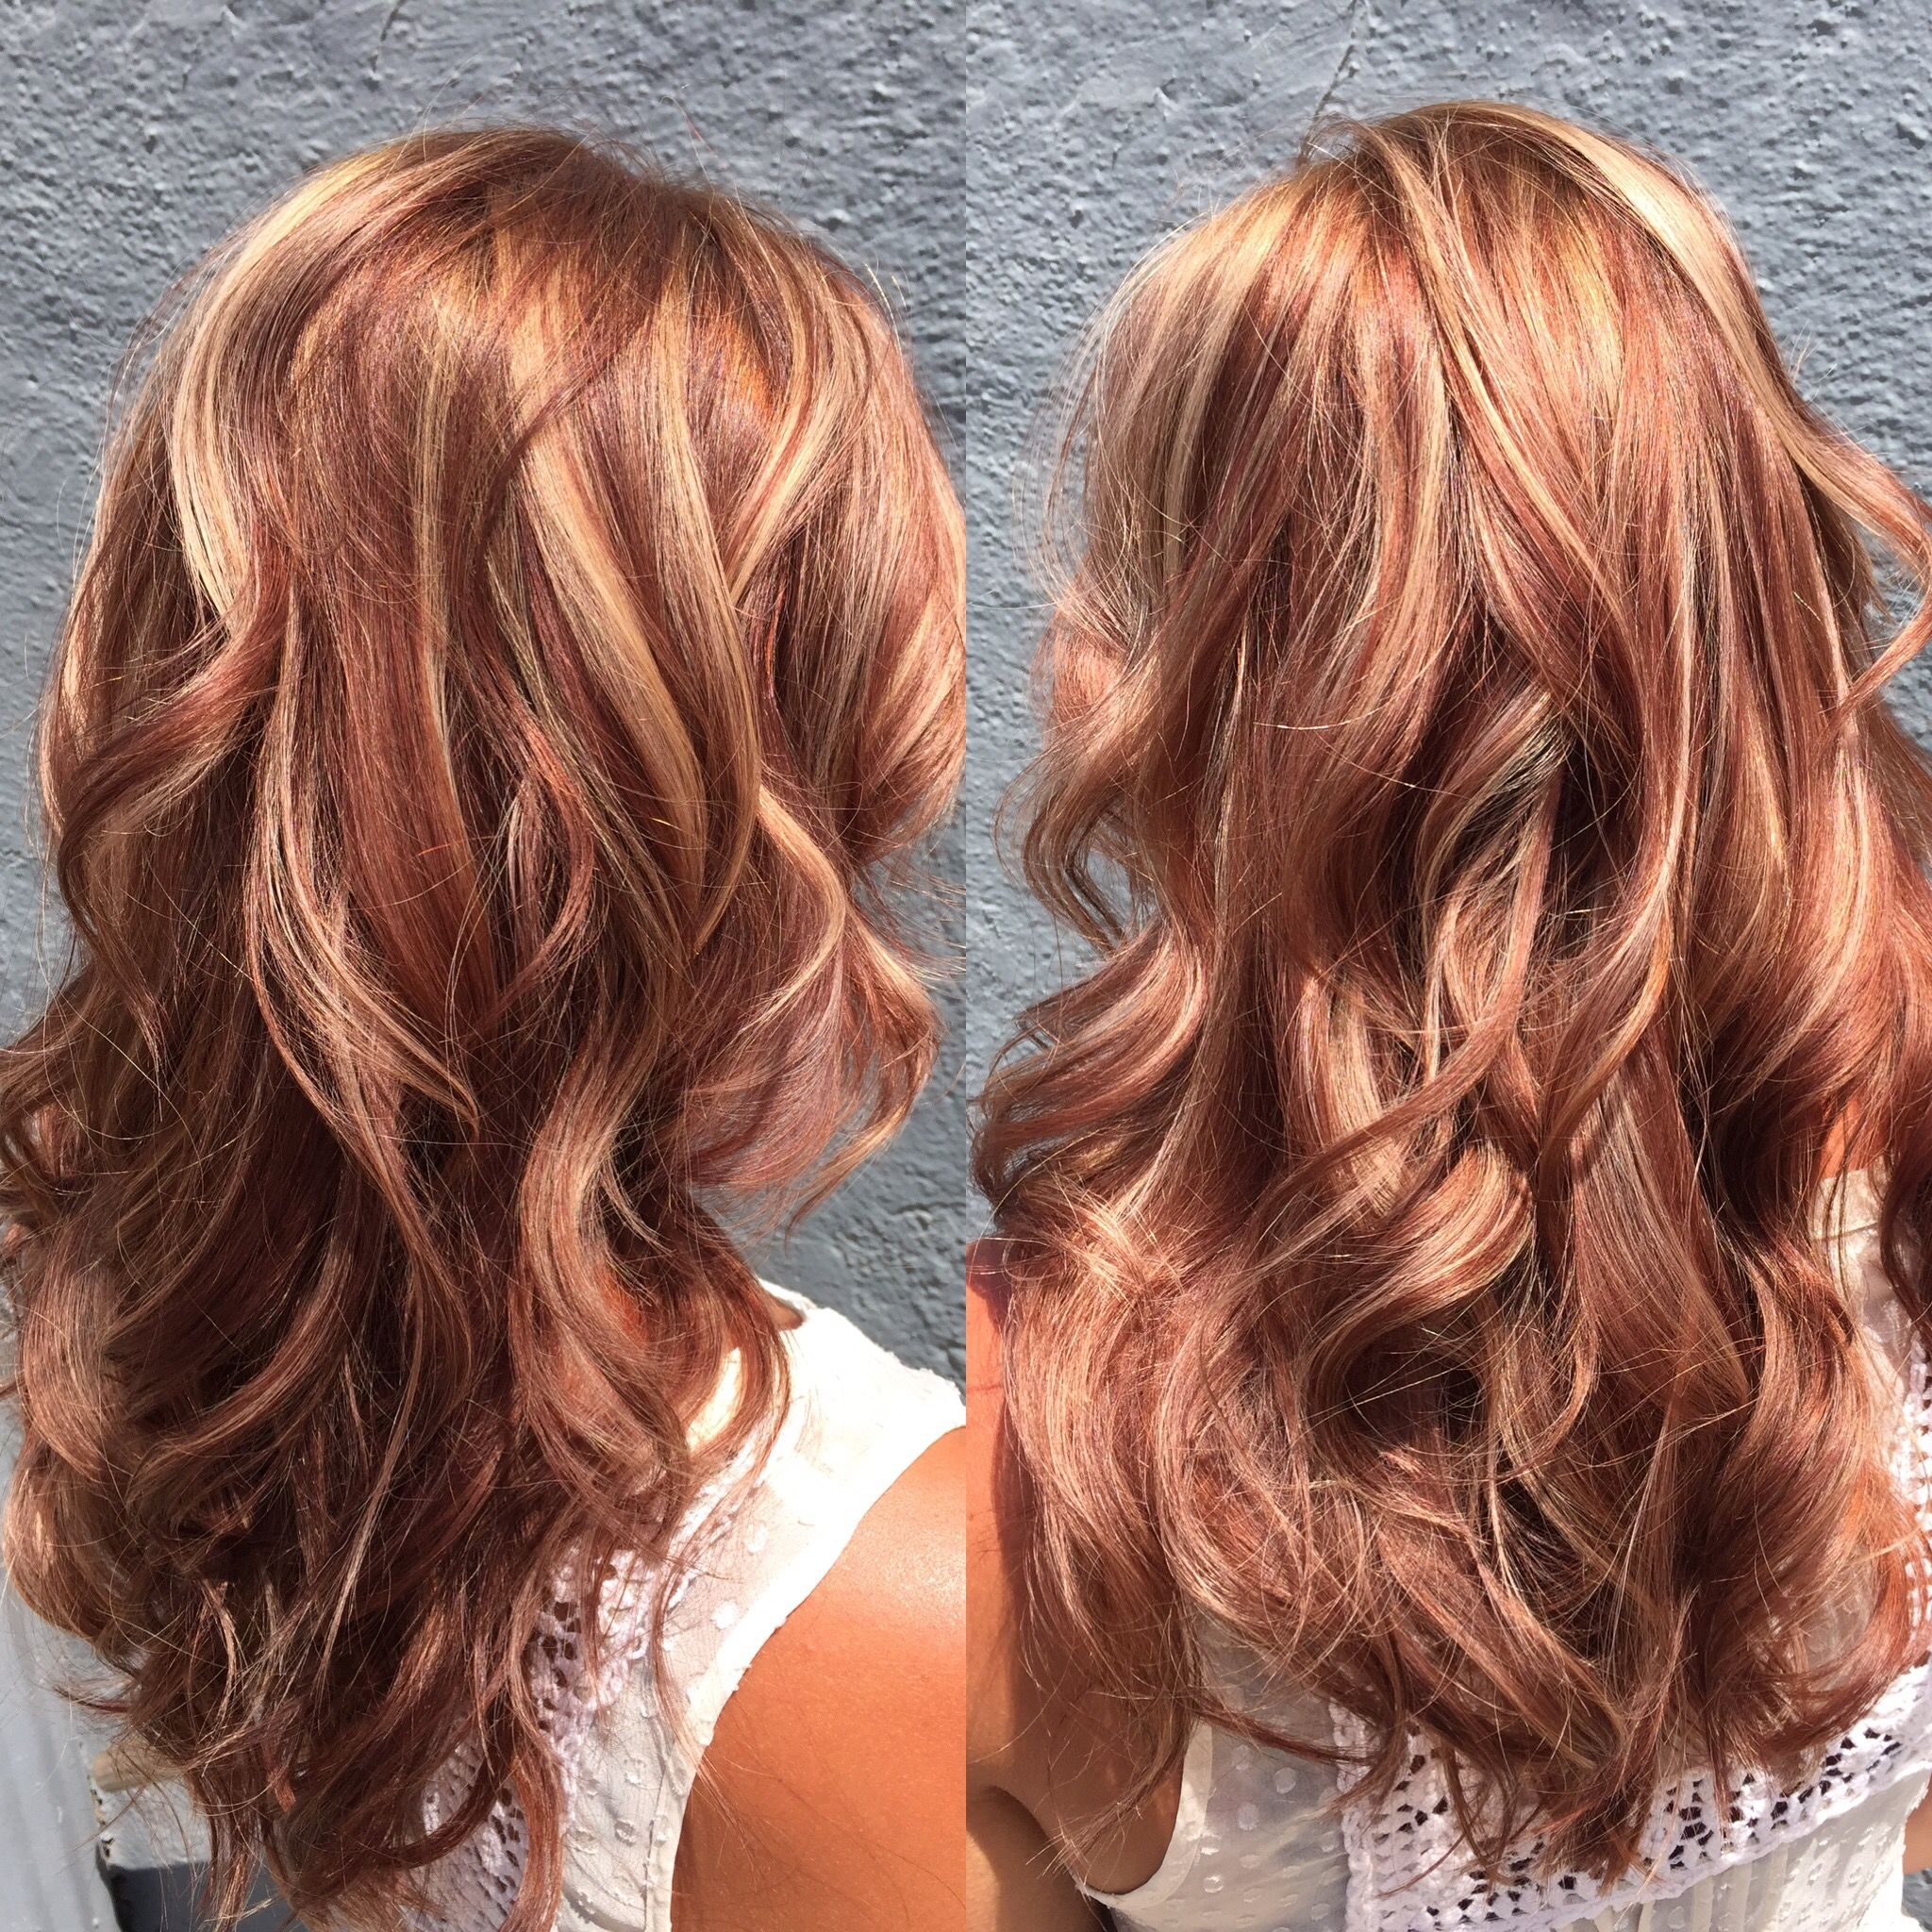 Hair Hilite-lowlite-auburn-red-blonde-waves-long hair ...